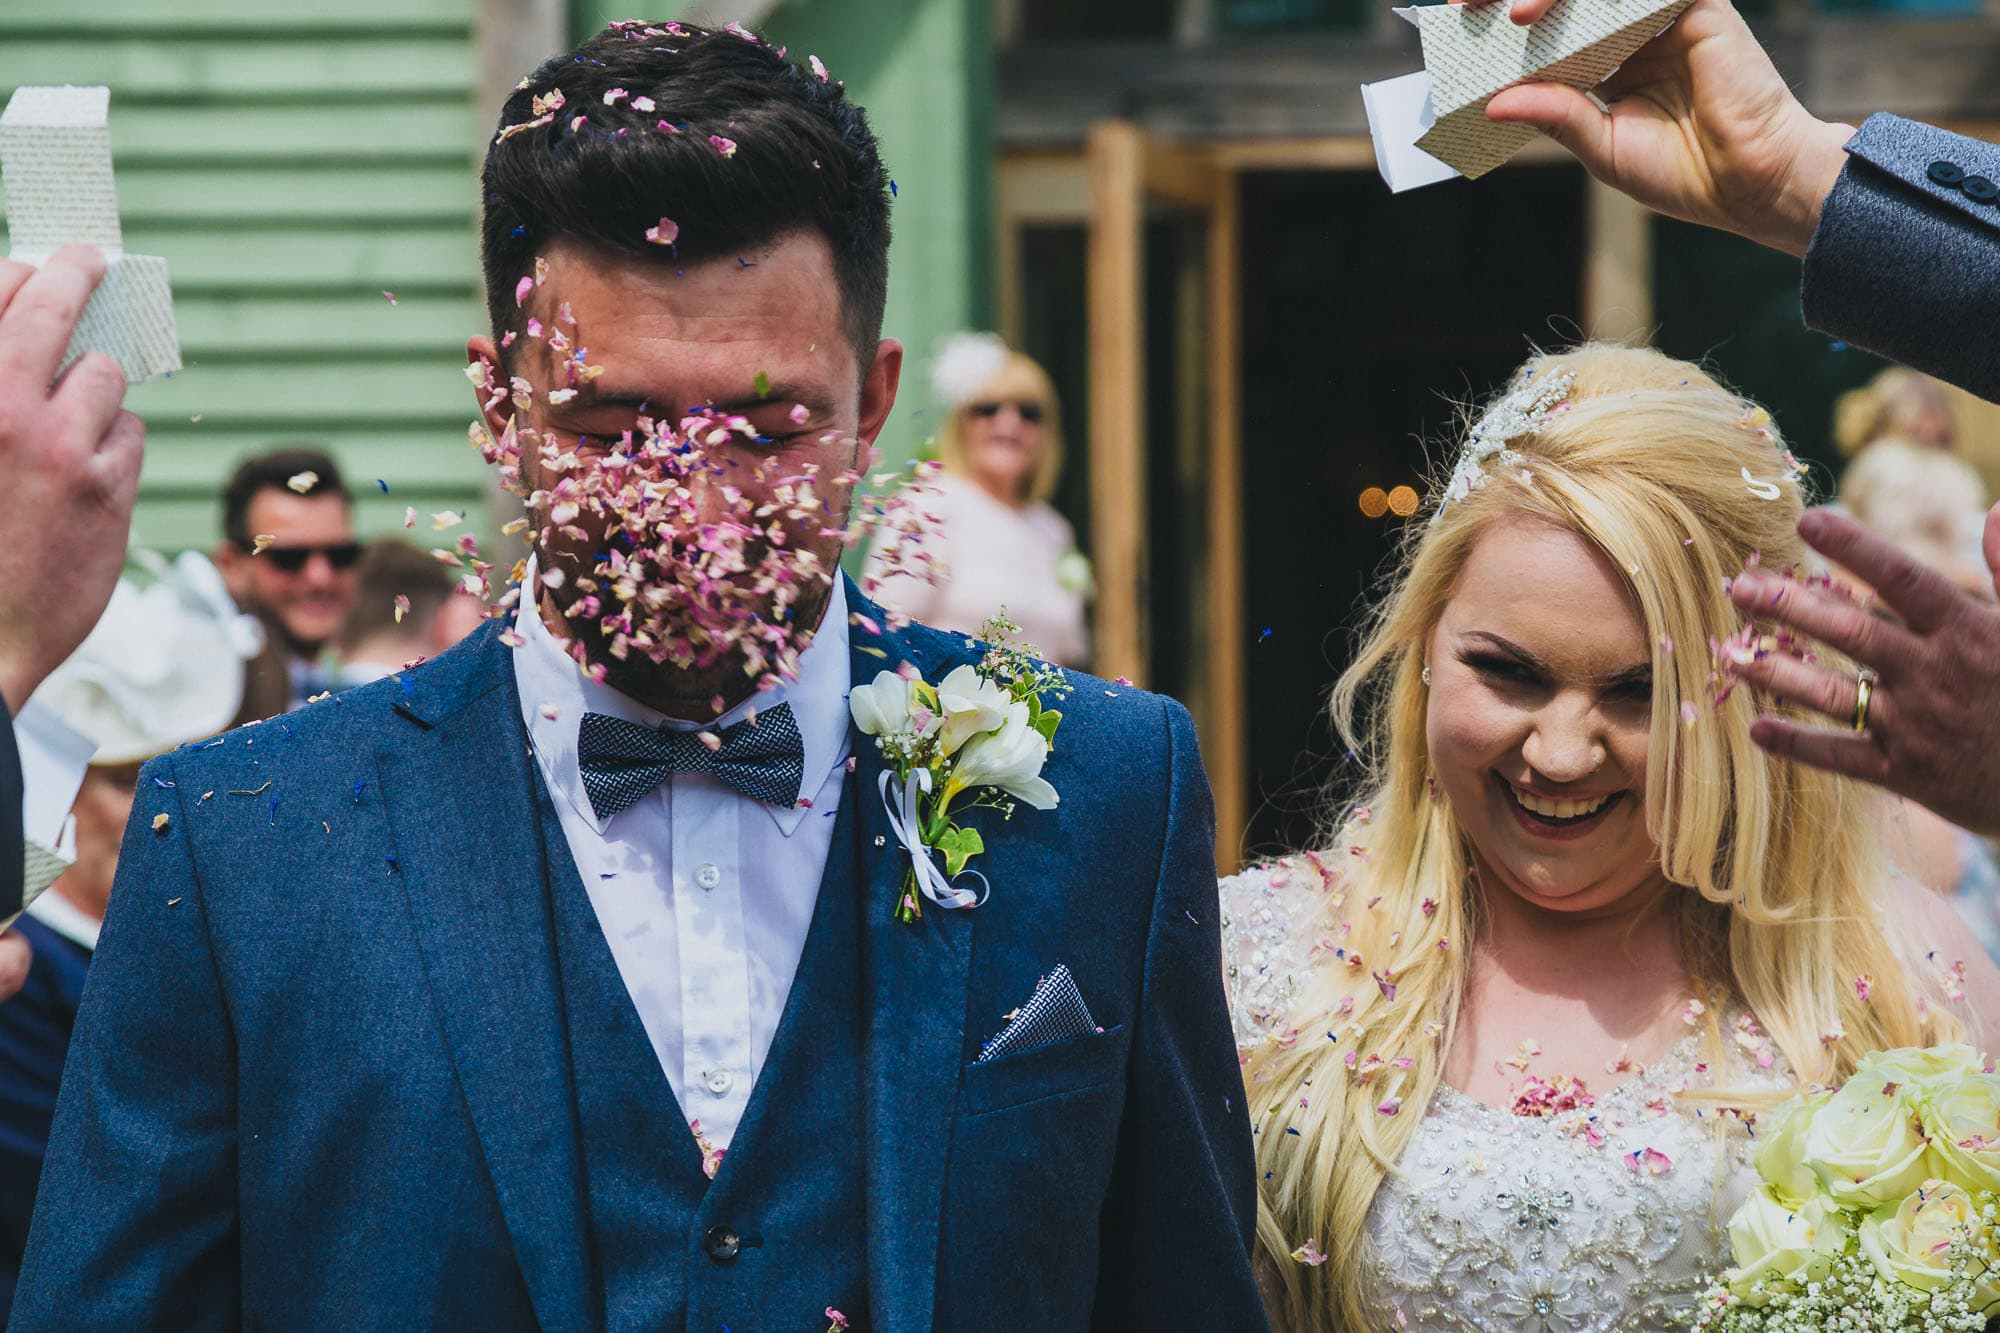 Bride and groom confetti in face photograph